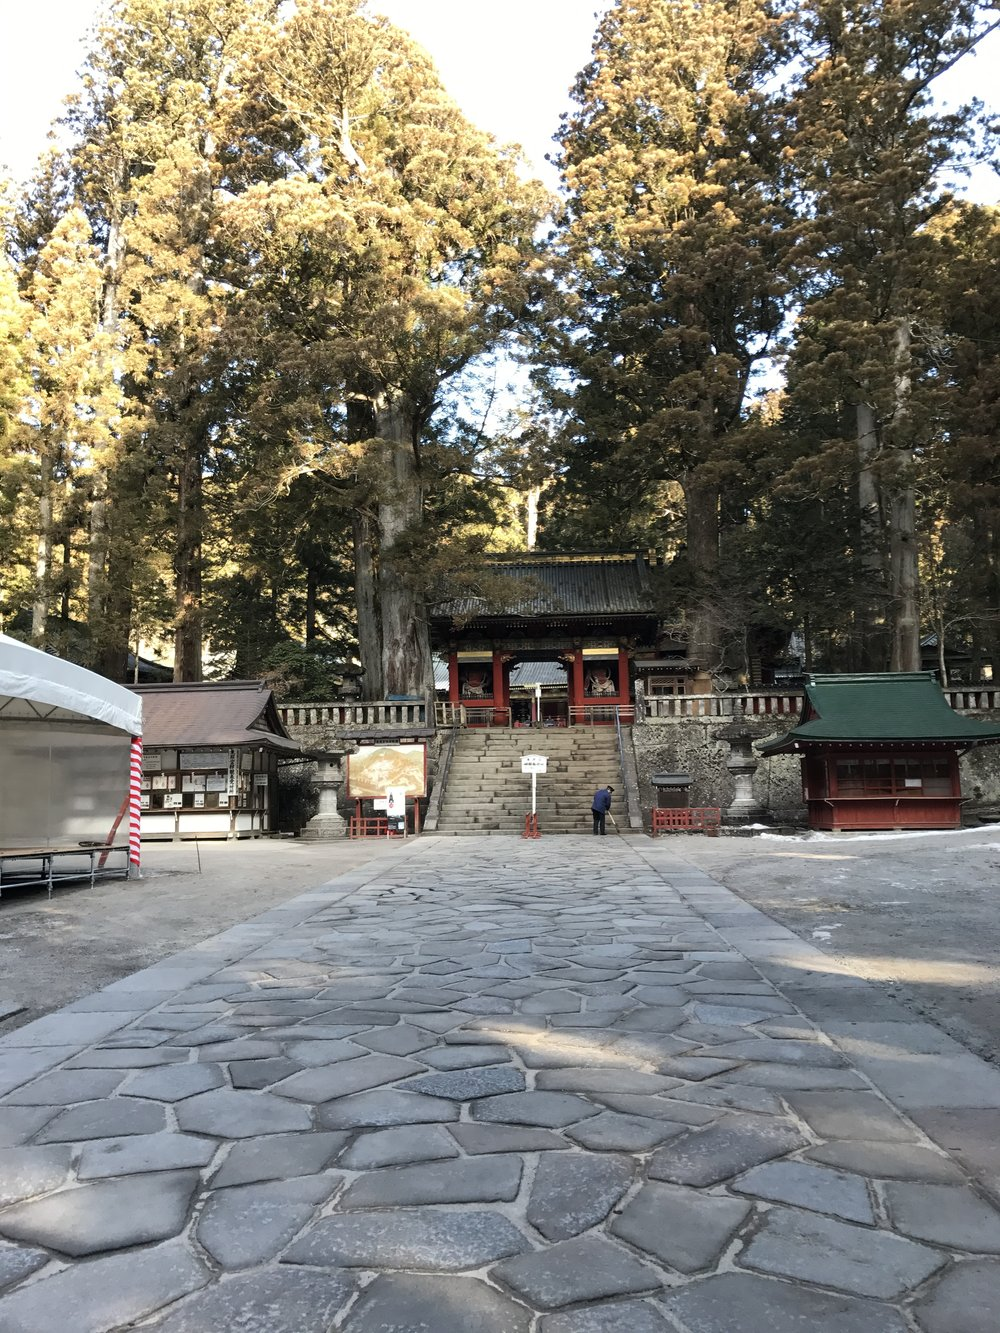 The main entrance: ¥1,300 for the shrine and look in the 12 gods dedicated to the 12 animals from the Chinese calendar (year of the cock this year)